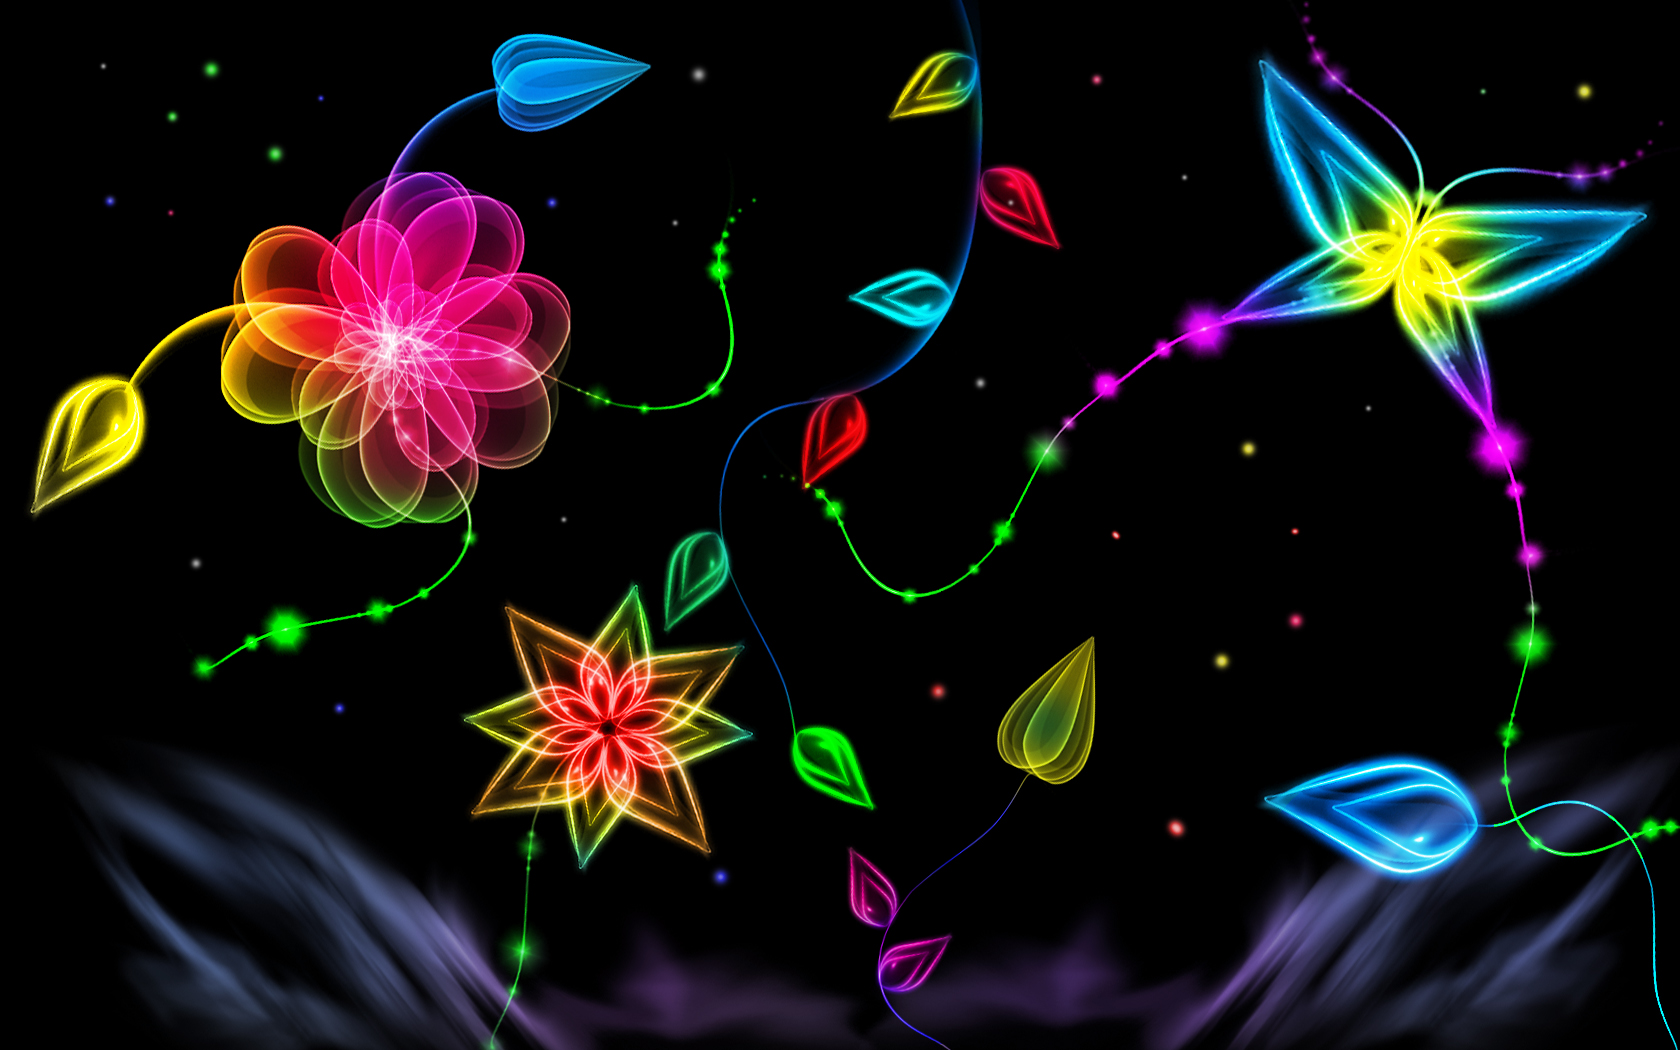 Download Neon Abstract Wallpaper 1680x1050 Full HD Wallpapers 1680x1050